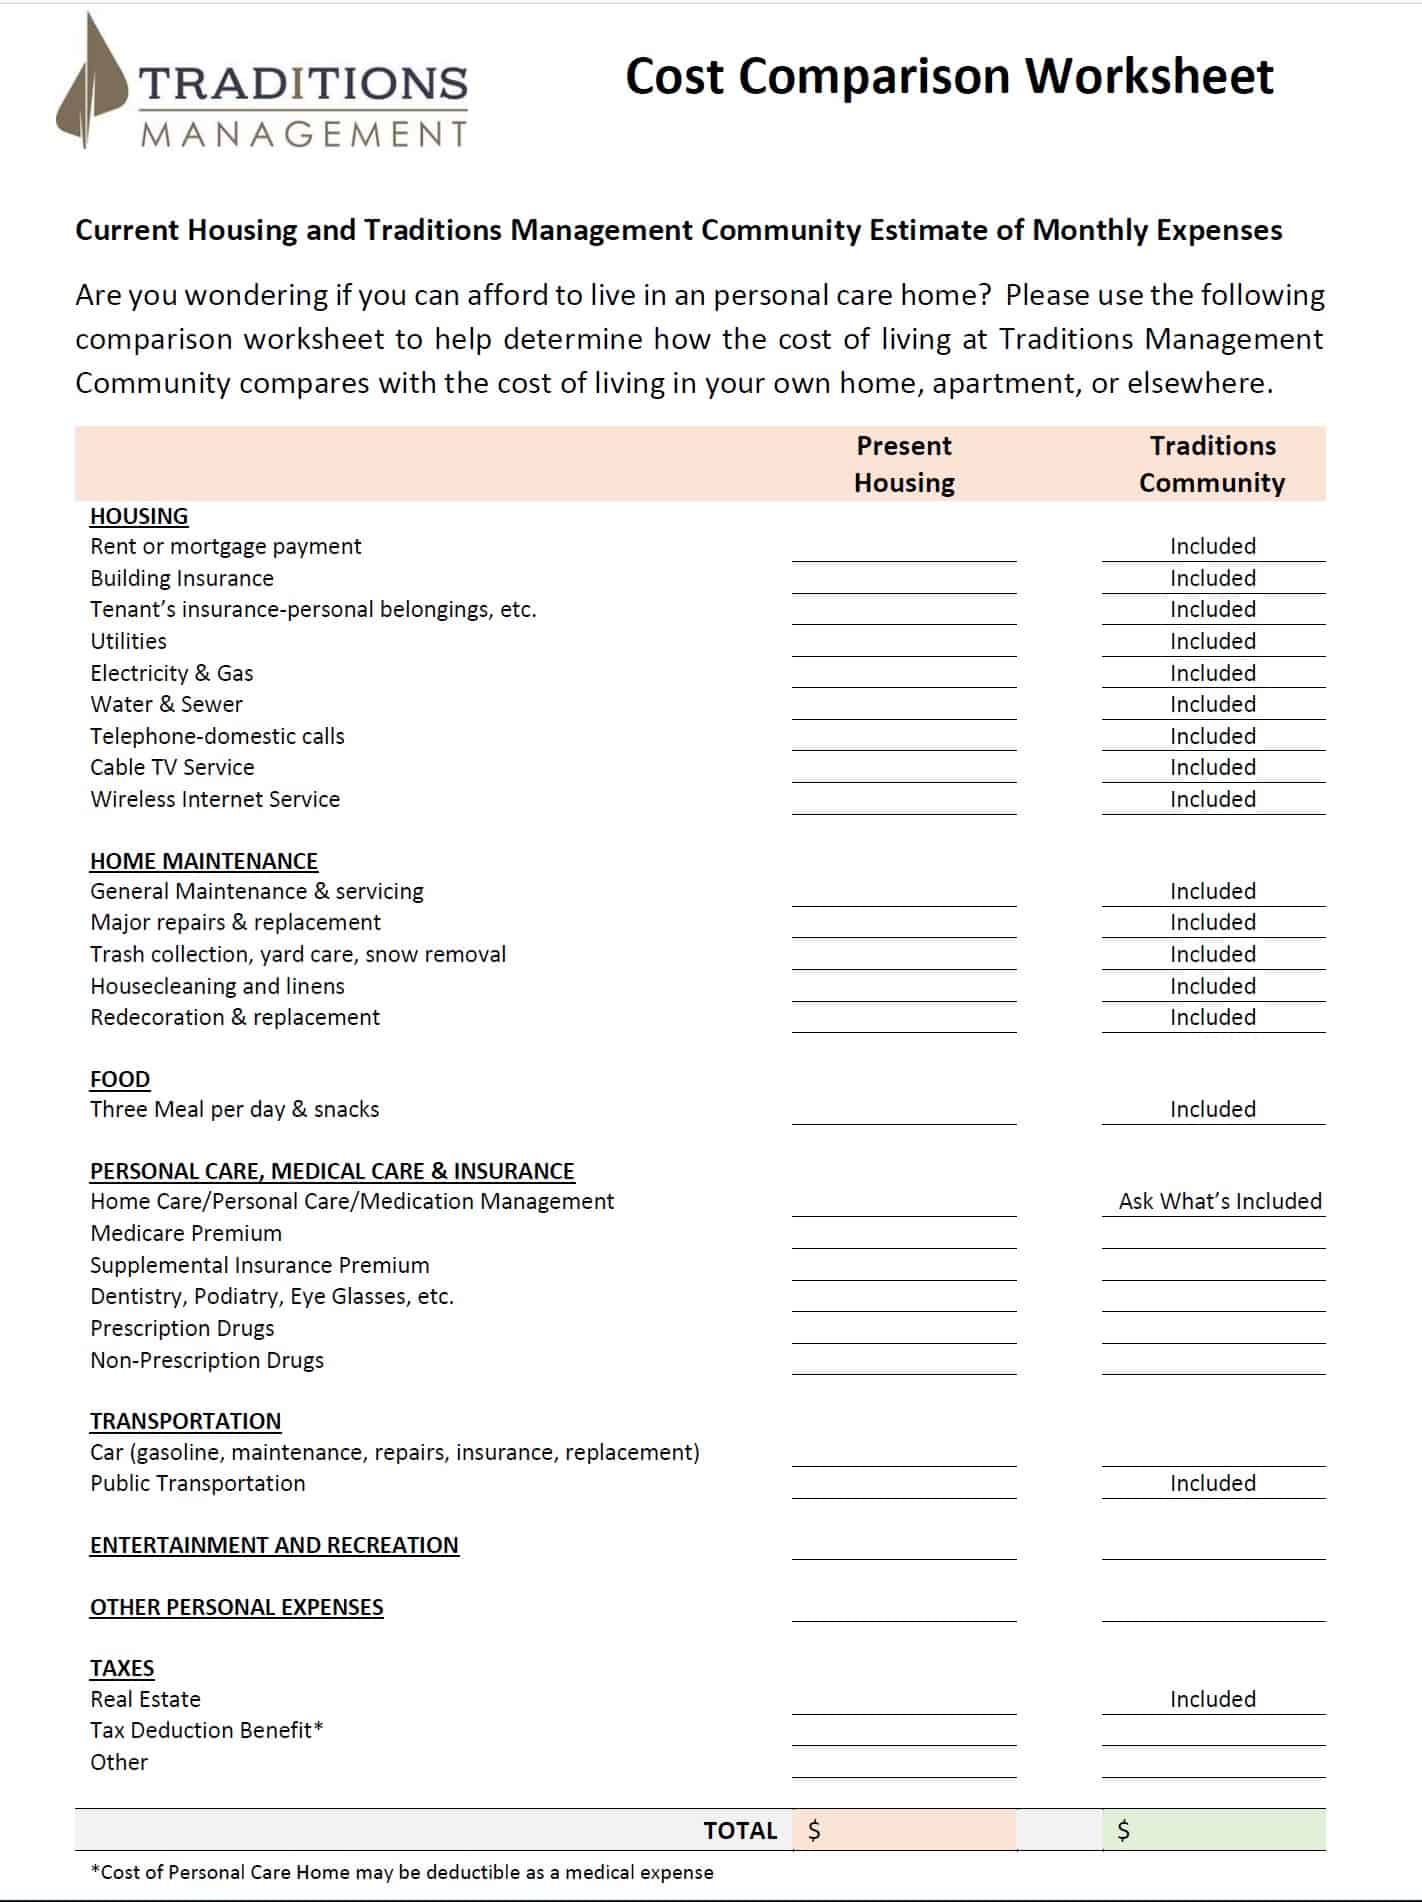 Cost Comparison Worksheet